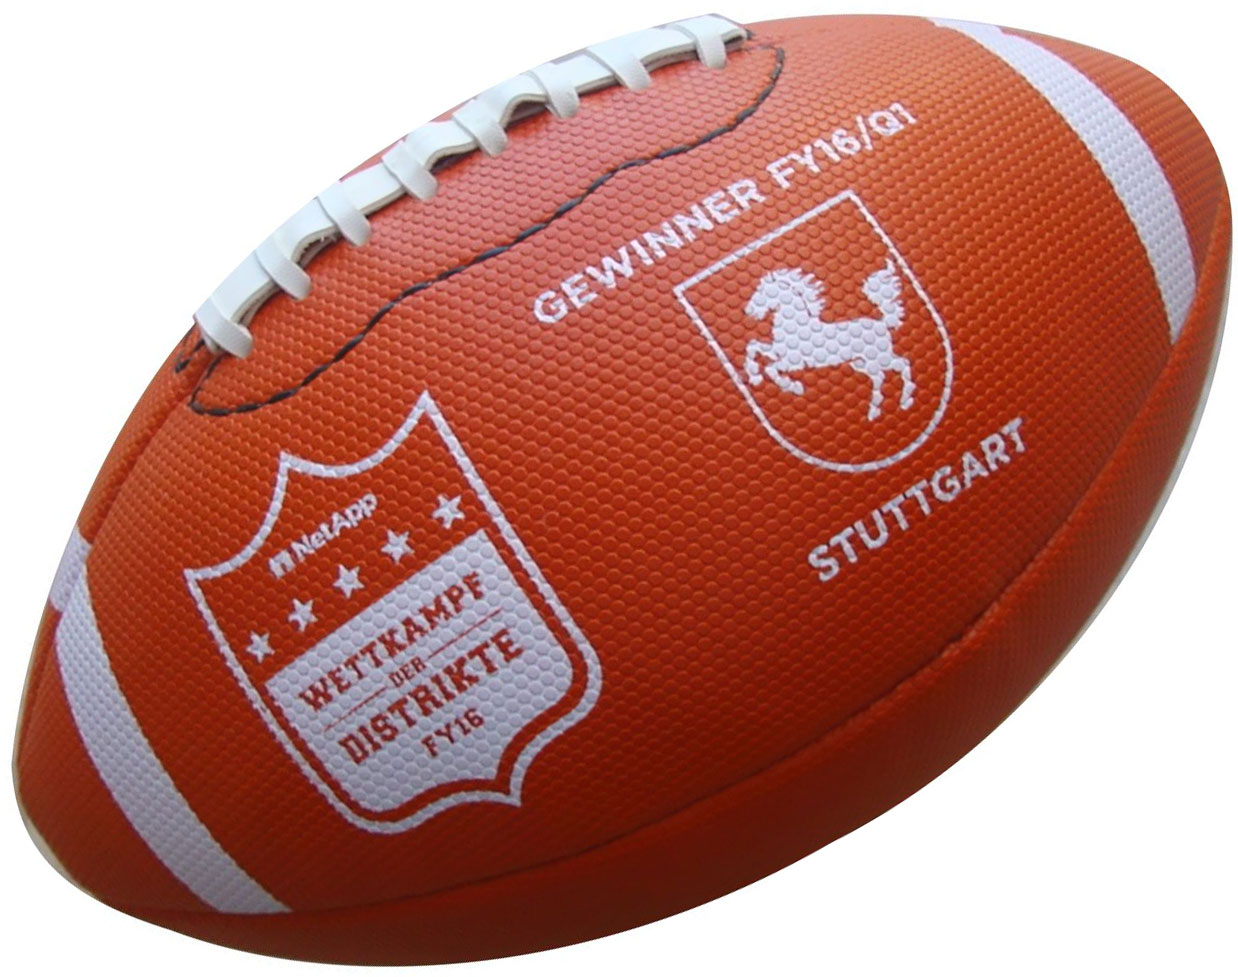 Customized American Football printed conveniently delivered quickly